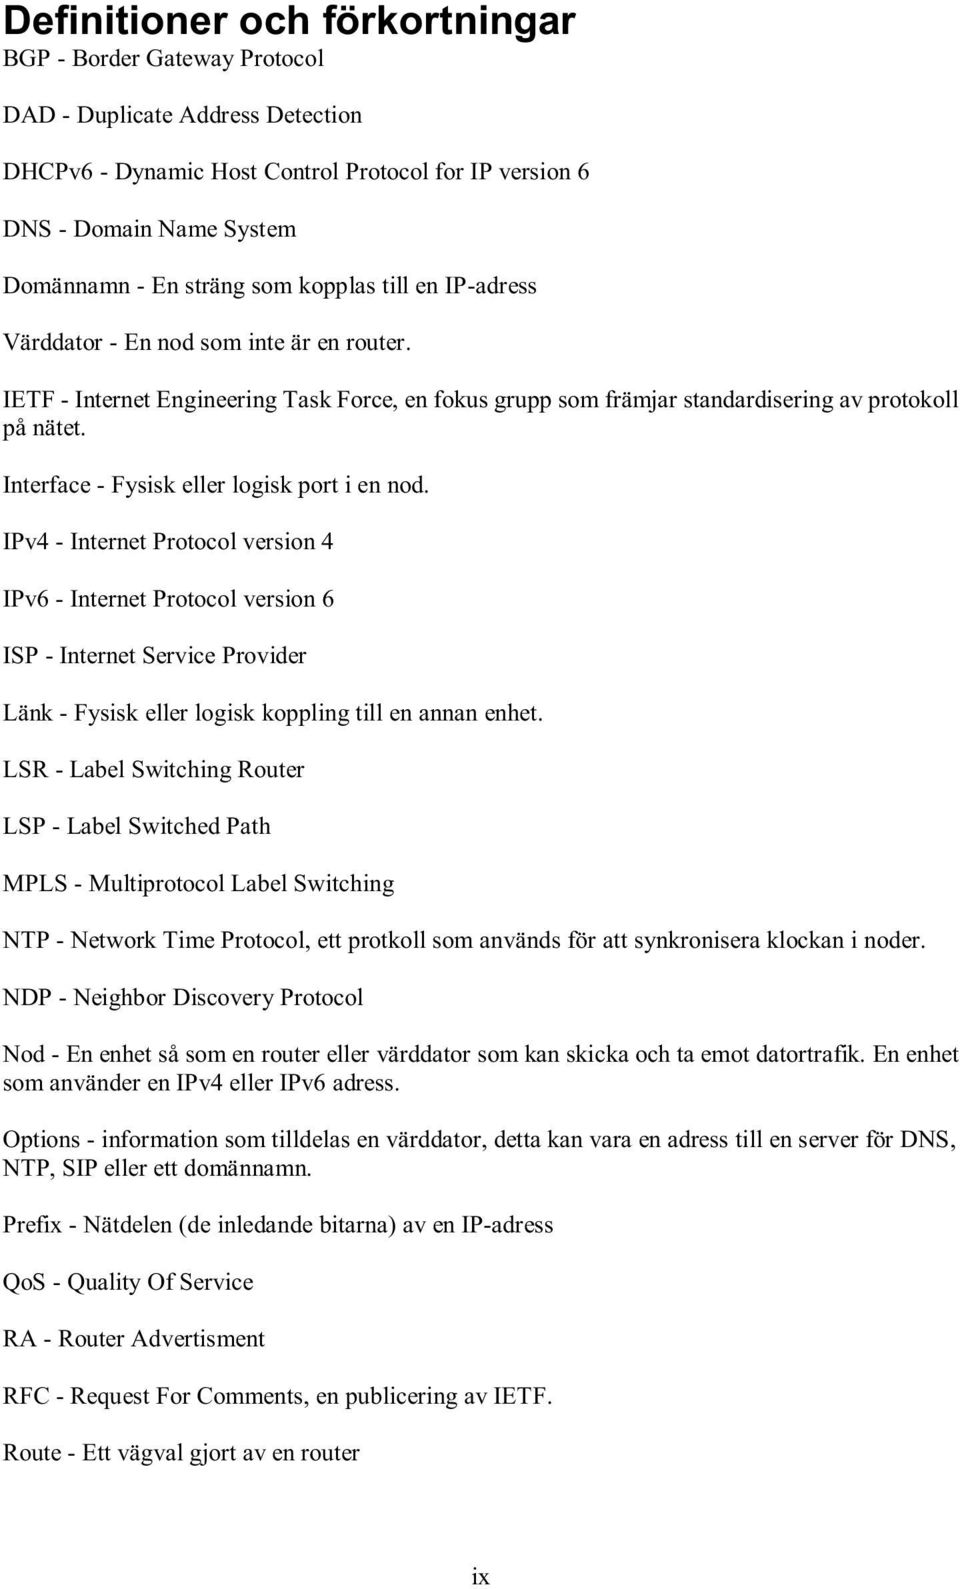 Interface - Fysisk eller logisk port i en nod.